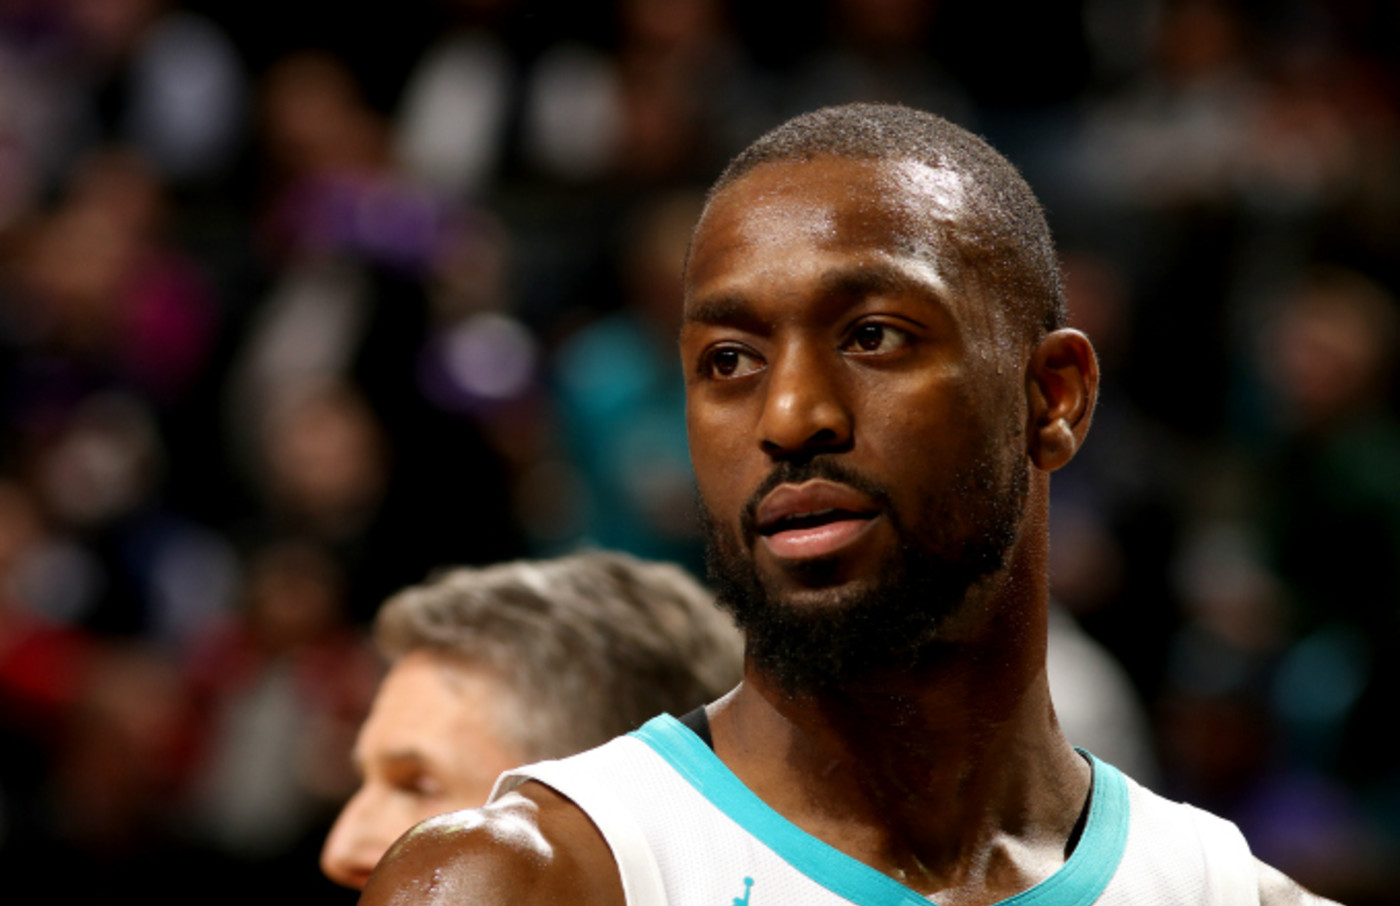 Kemba Walker #15 of the Charlotte Hornets looks on